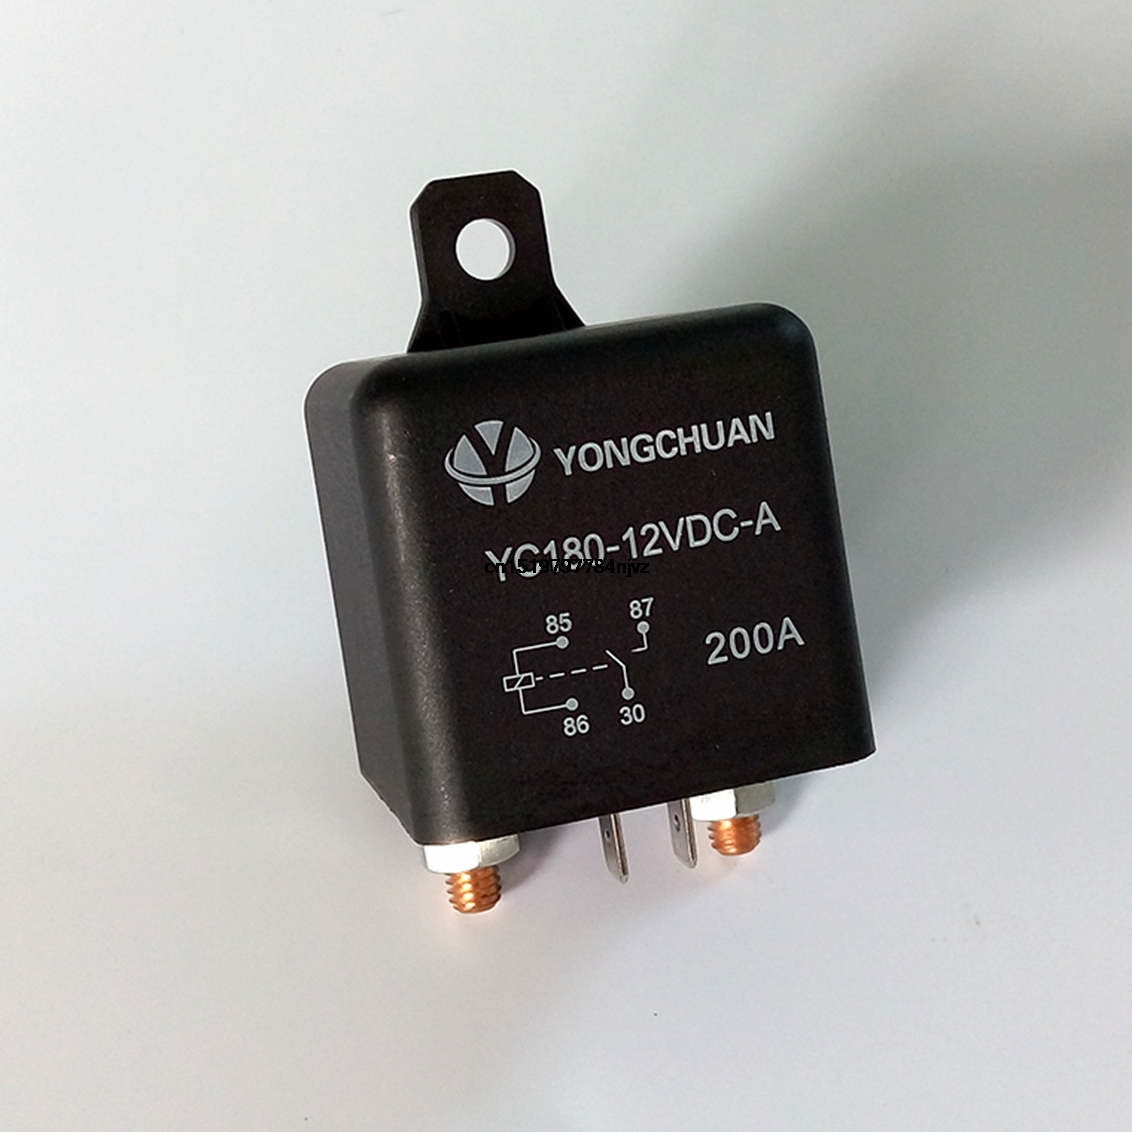 цена на Car Truck Motor Automotive high current relay 12V 200A 2.4W Continuous type Automotive relay car relays YC180-12VDC-A 1PCS